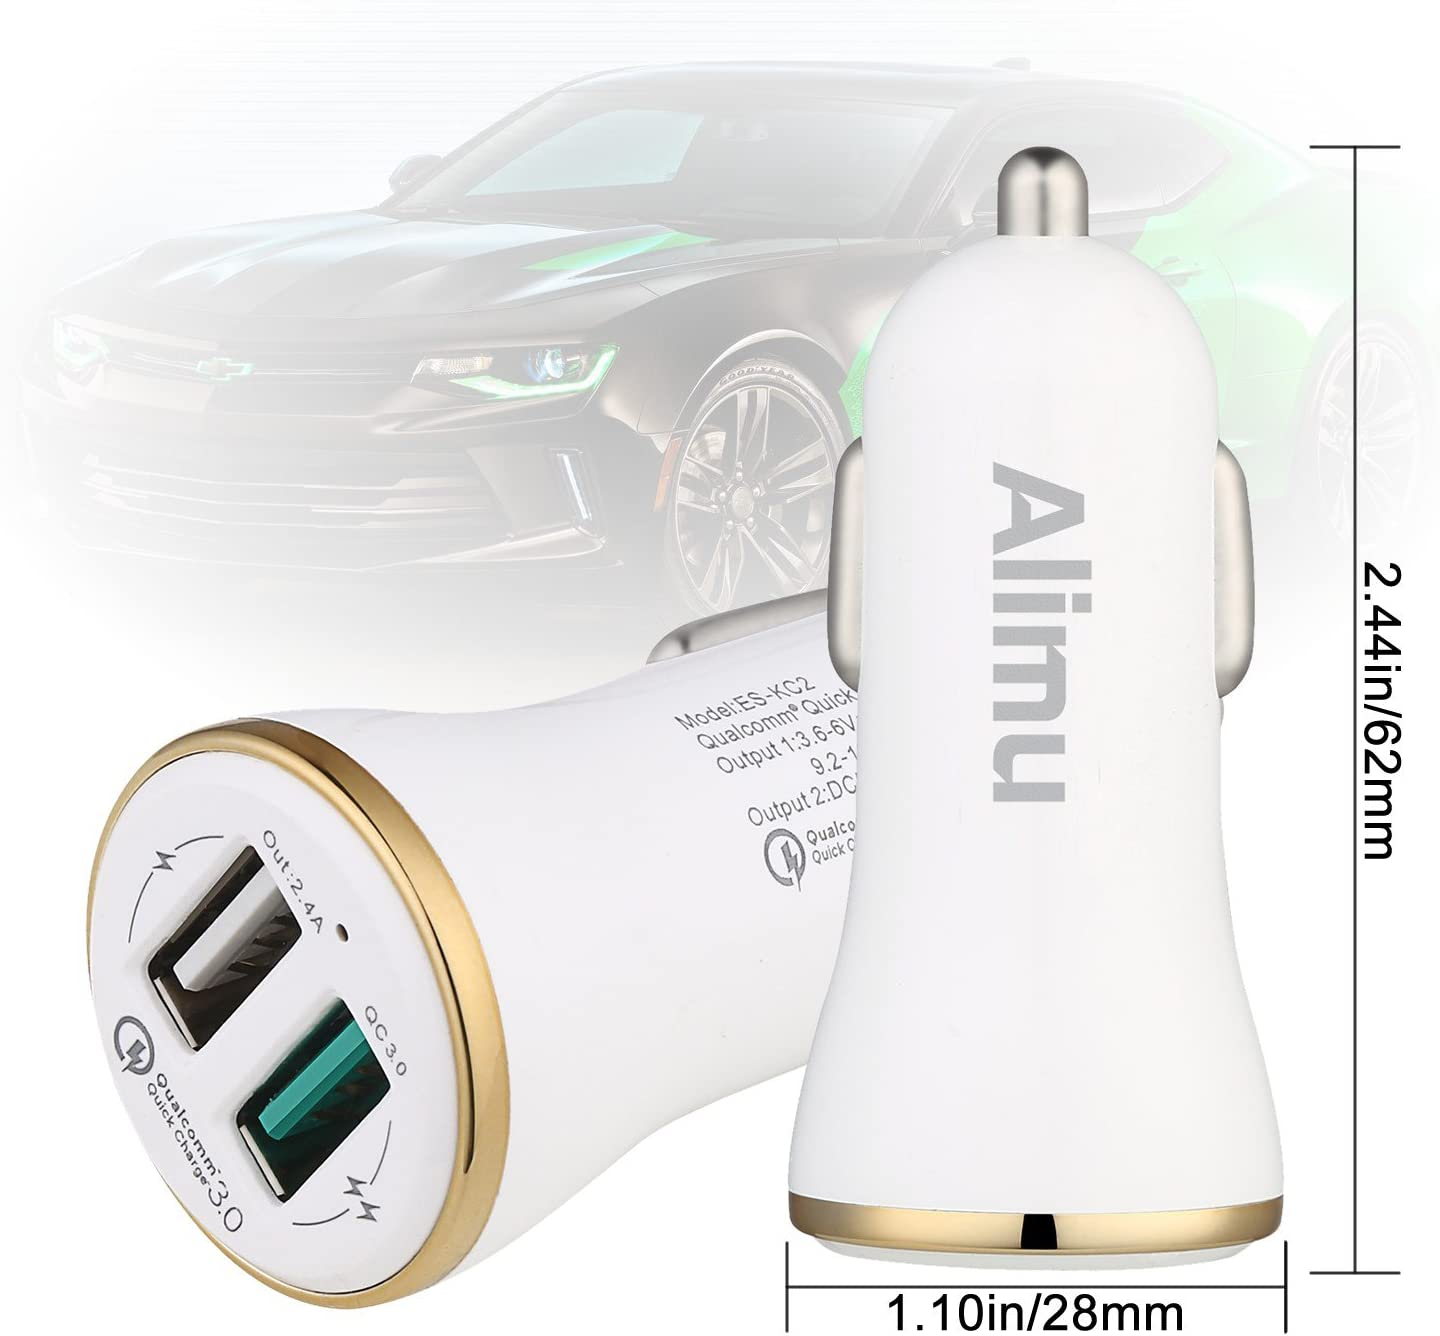 Alimu Rapid Fast Car Charger with 6.6ft USB C Cable Works with LG G5,G6,G7,V20,V30,HTC 10 U11,Samsung Galaxy S8 S9 S10 Plus Edge,Note 8,Note 9 USB Type C Car Charger